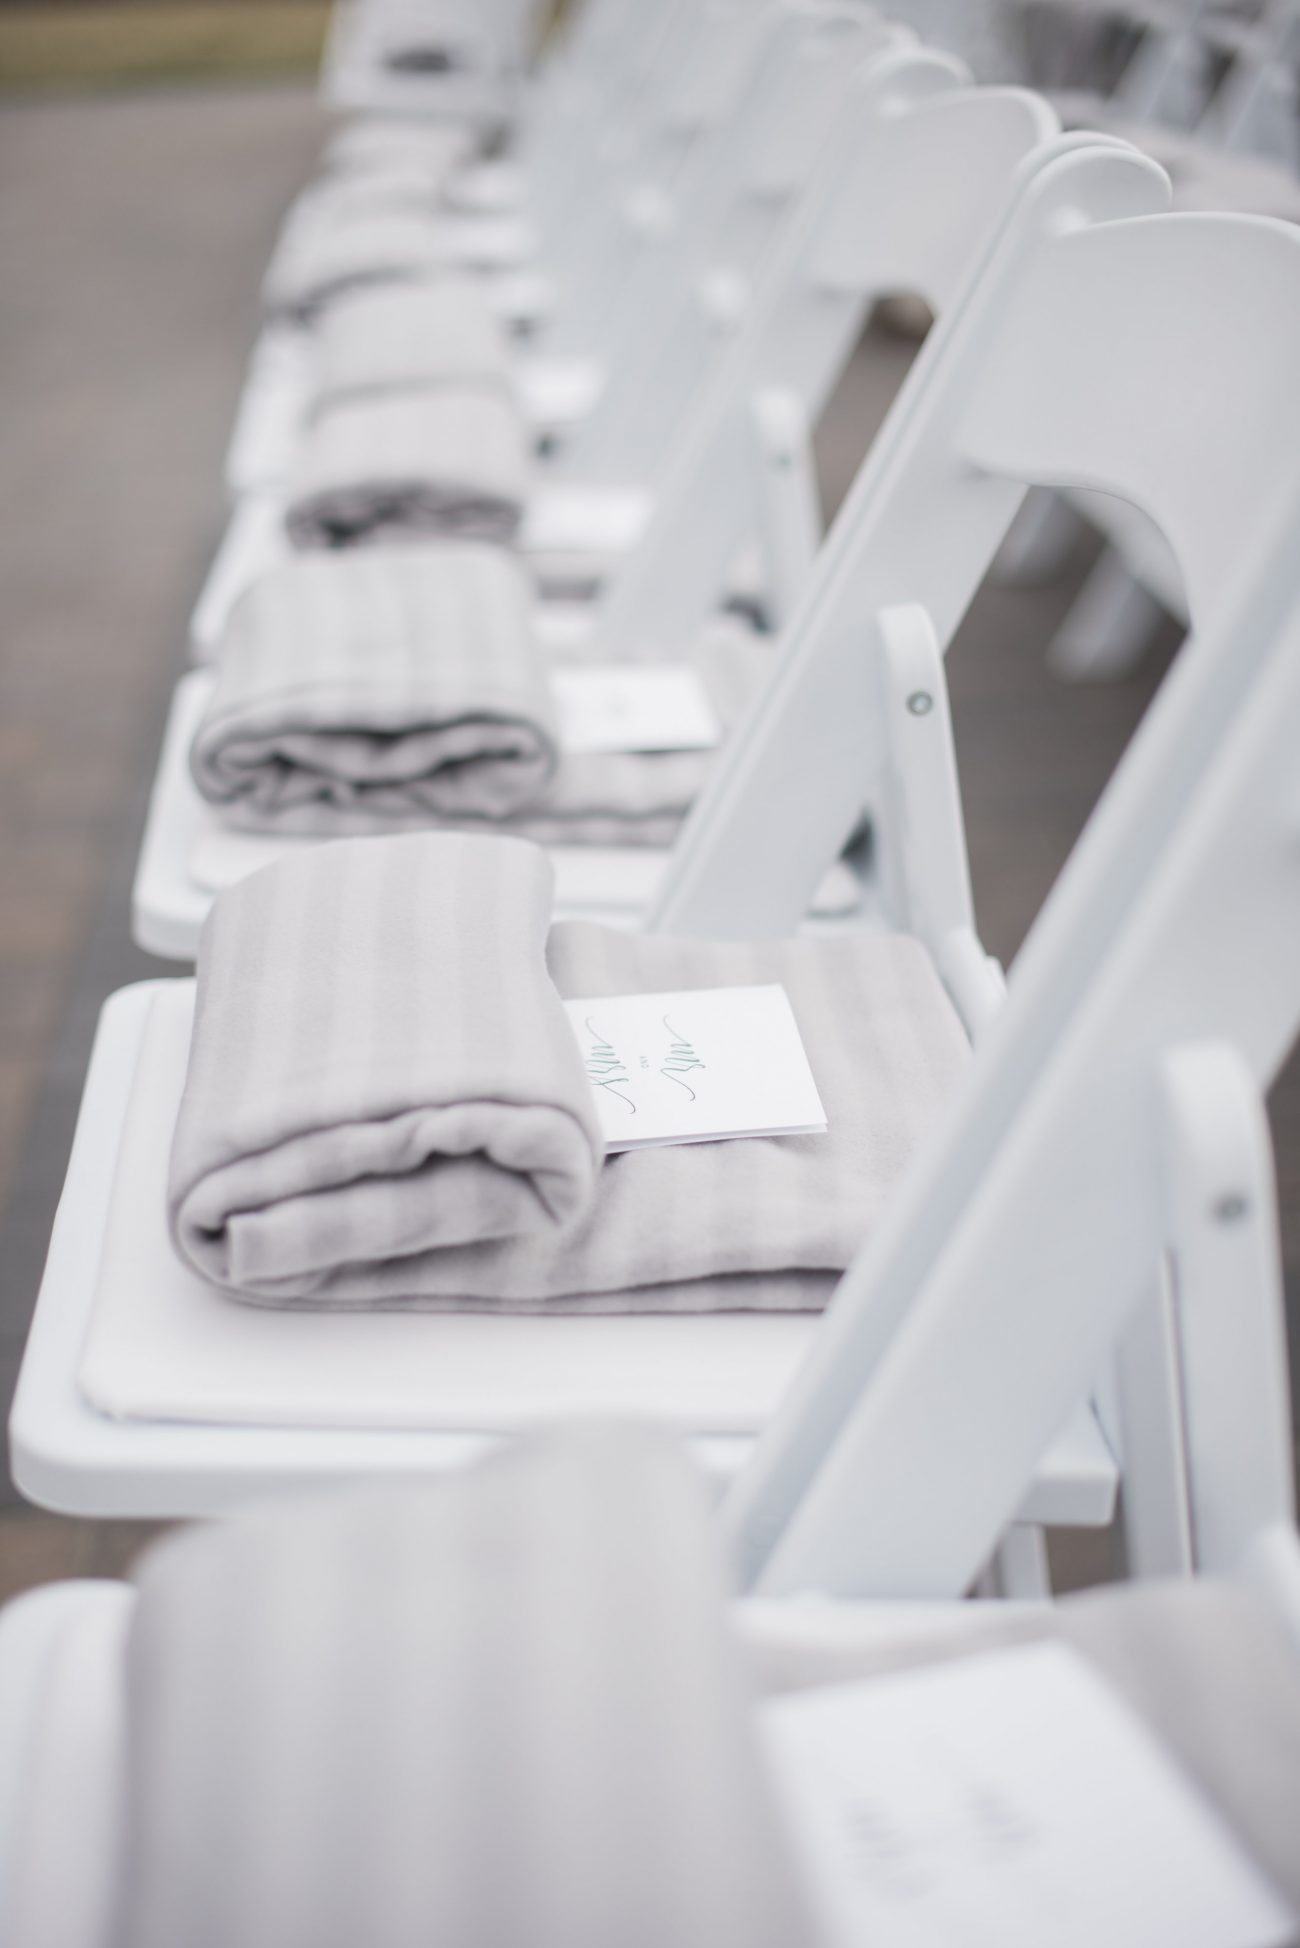 shawls provided on chairs for outdoor wedding event